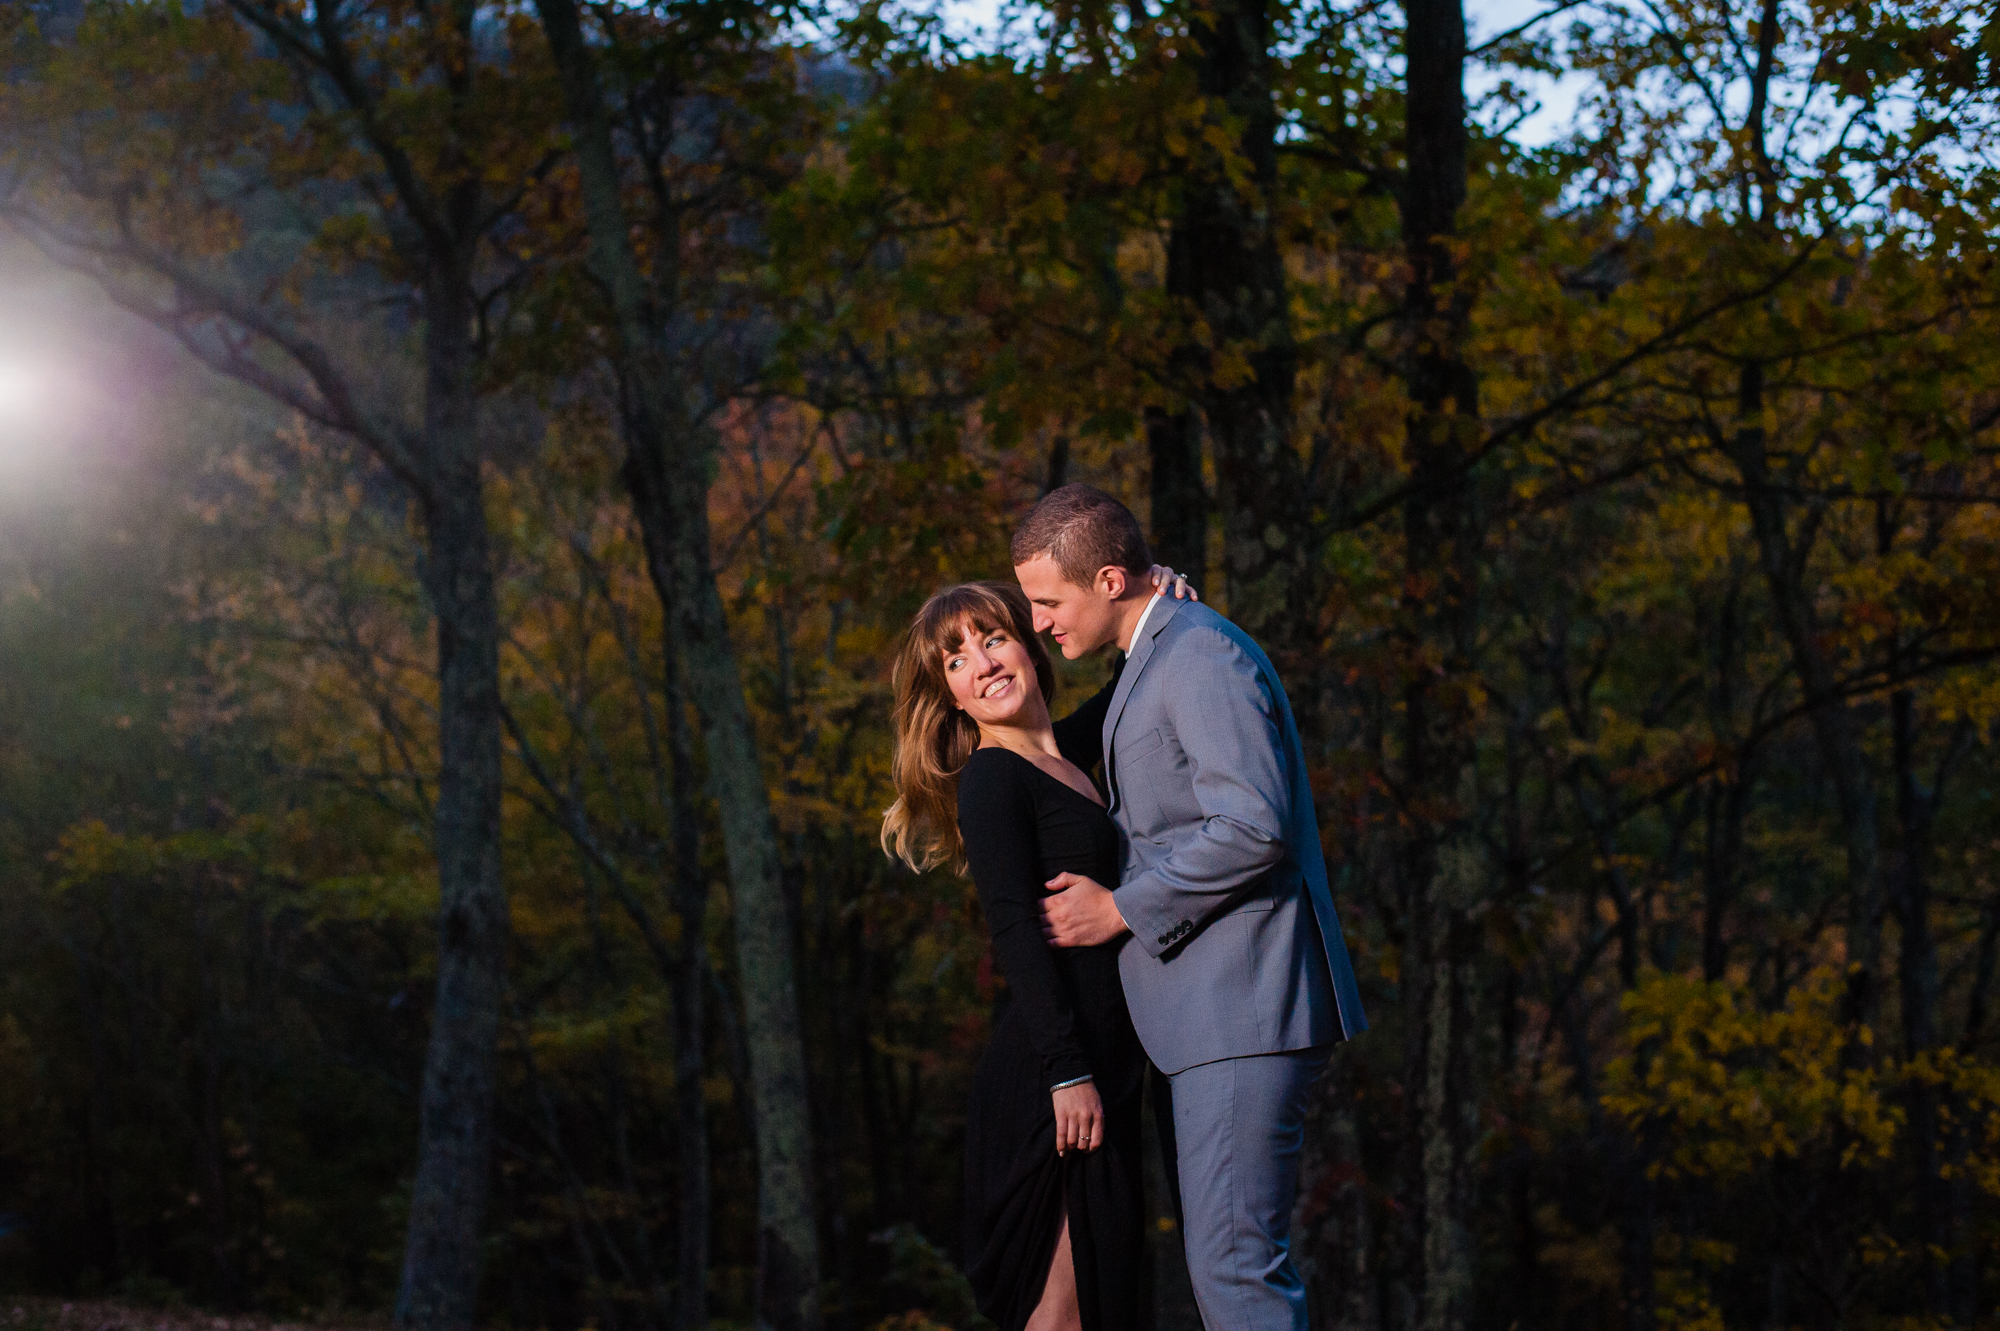 blue ridge parkway nighttime engagement session